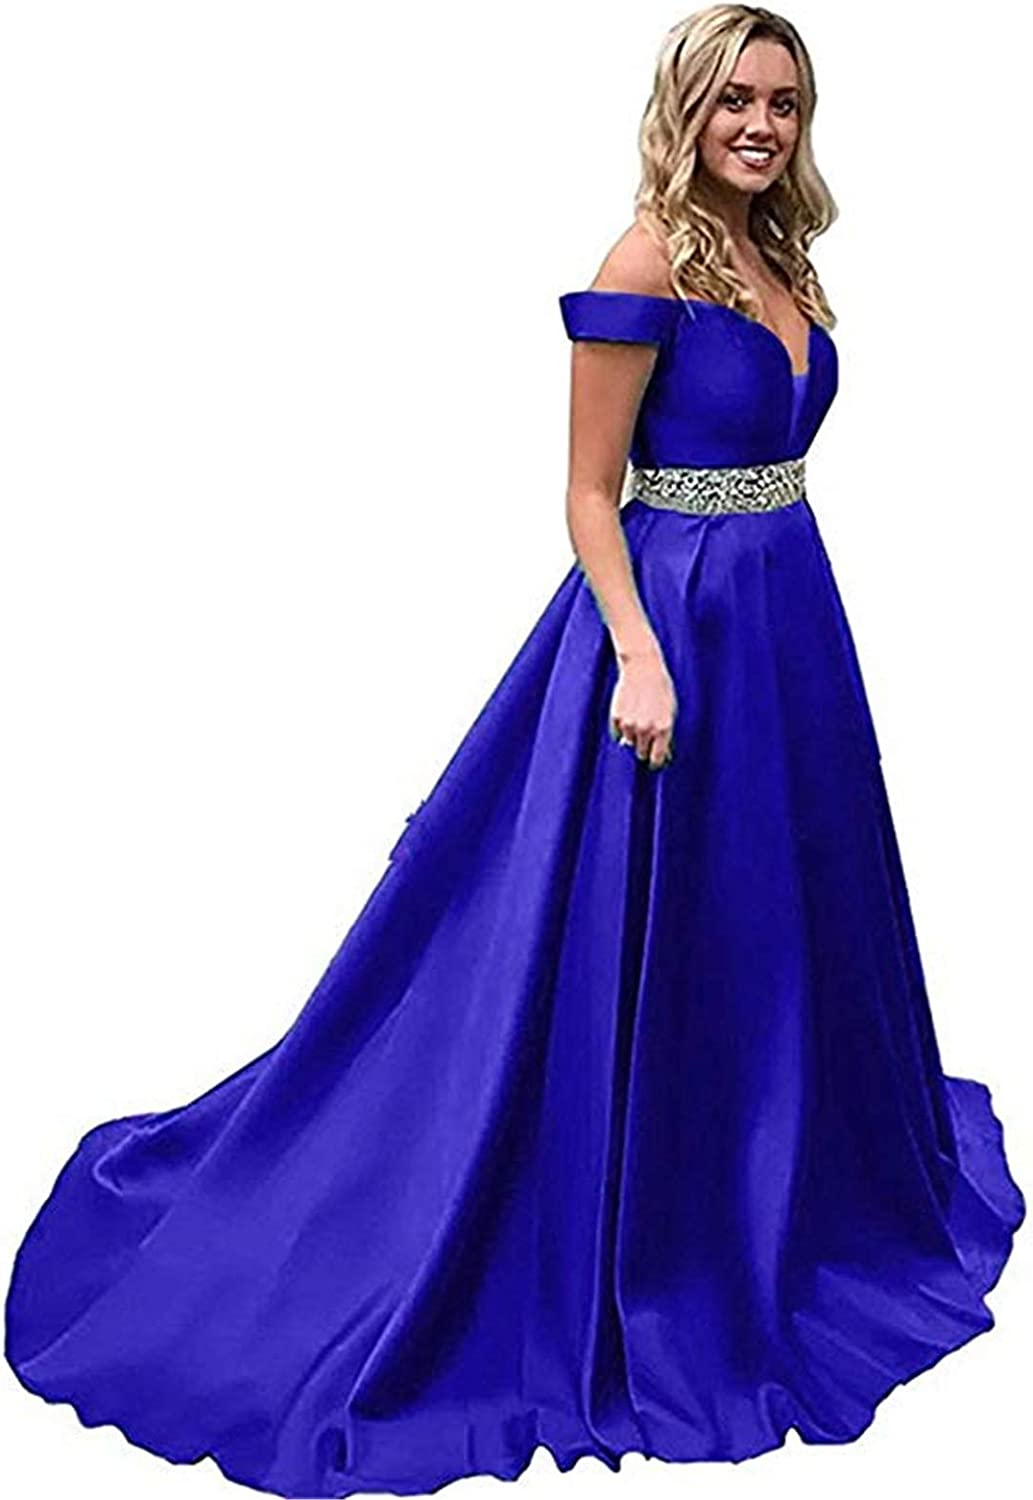 Scarisee Womens Aline Off Shoulder Beaded Prom Evening Party Dresses Pockets218